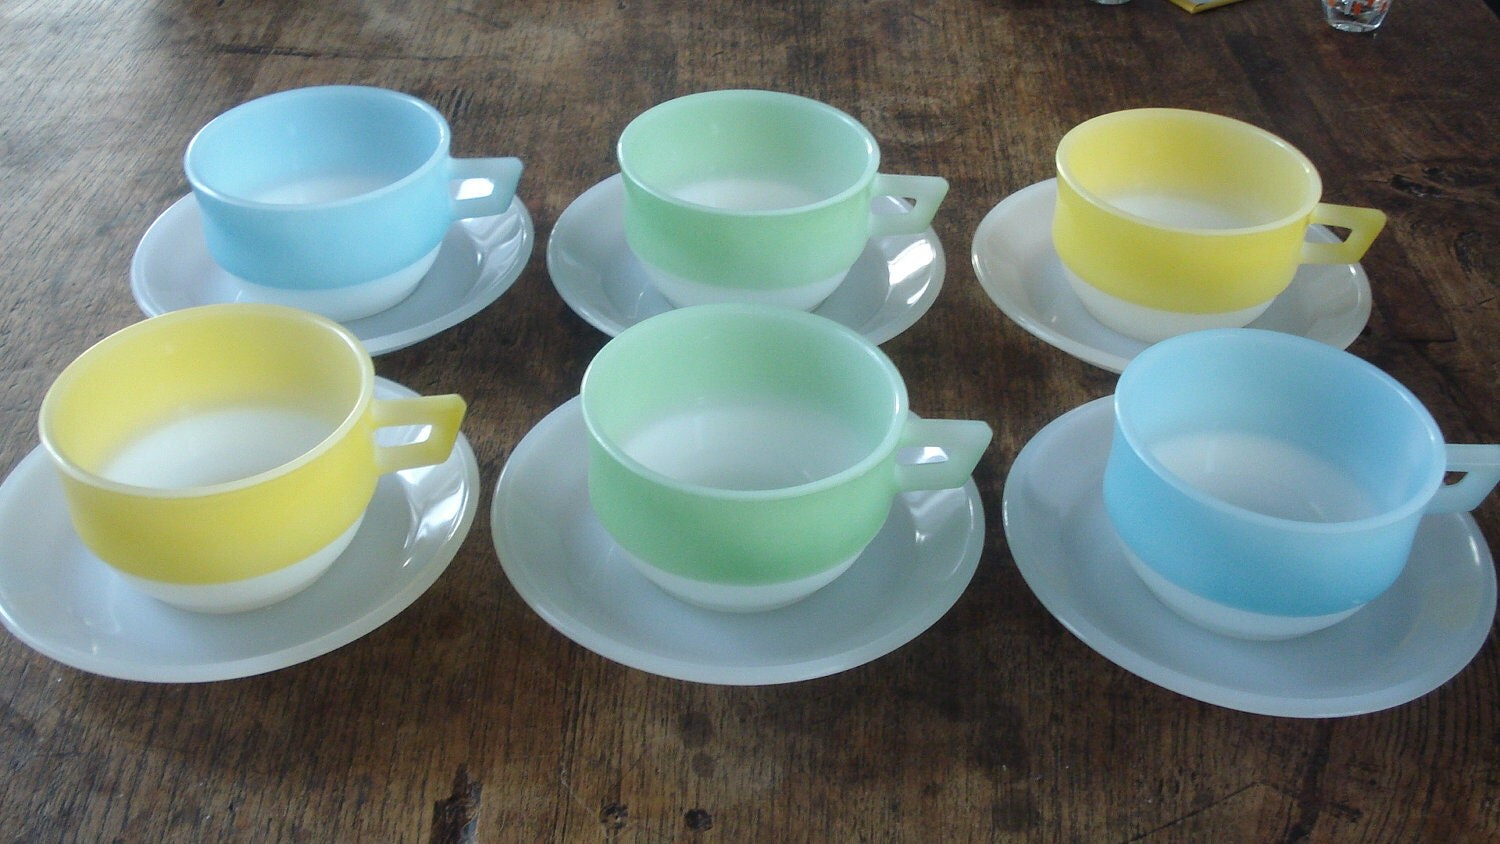 6 Pastel Arcopal Plates & Bowls Cups for Soup or Snacks France Summer Breakfast 70s